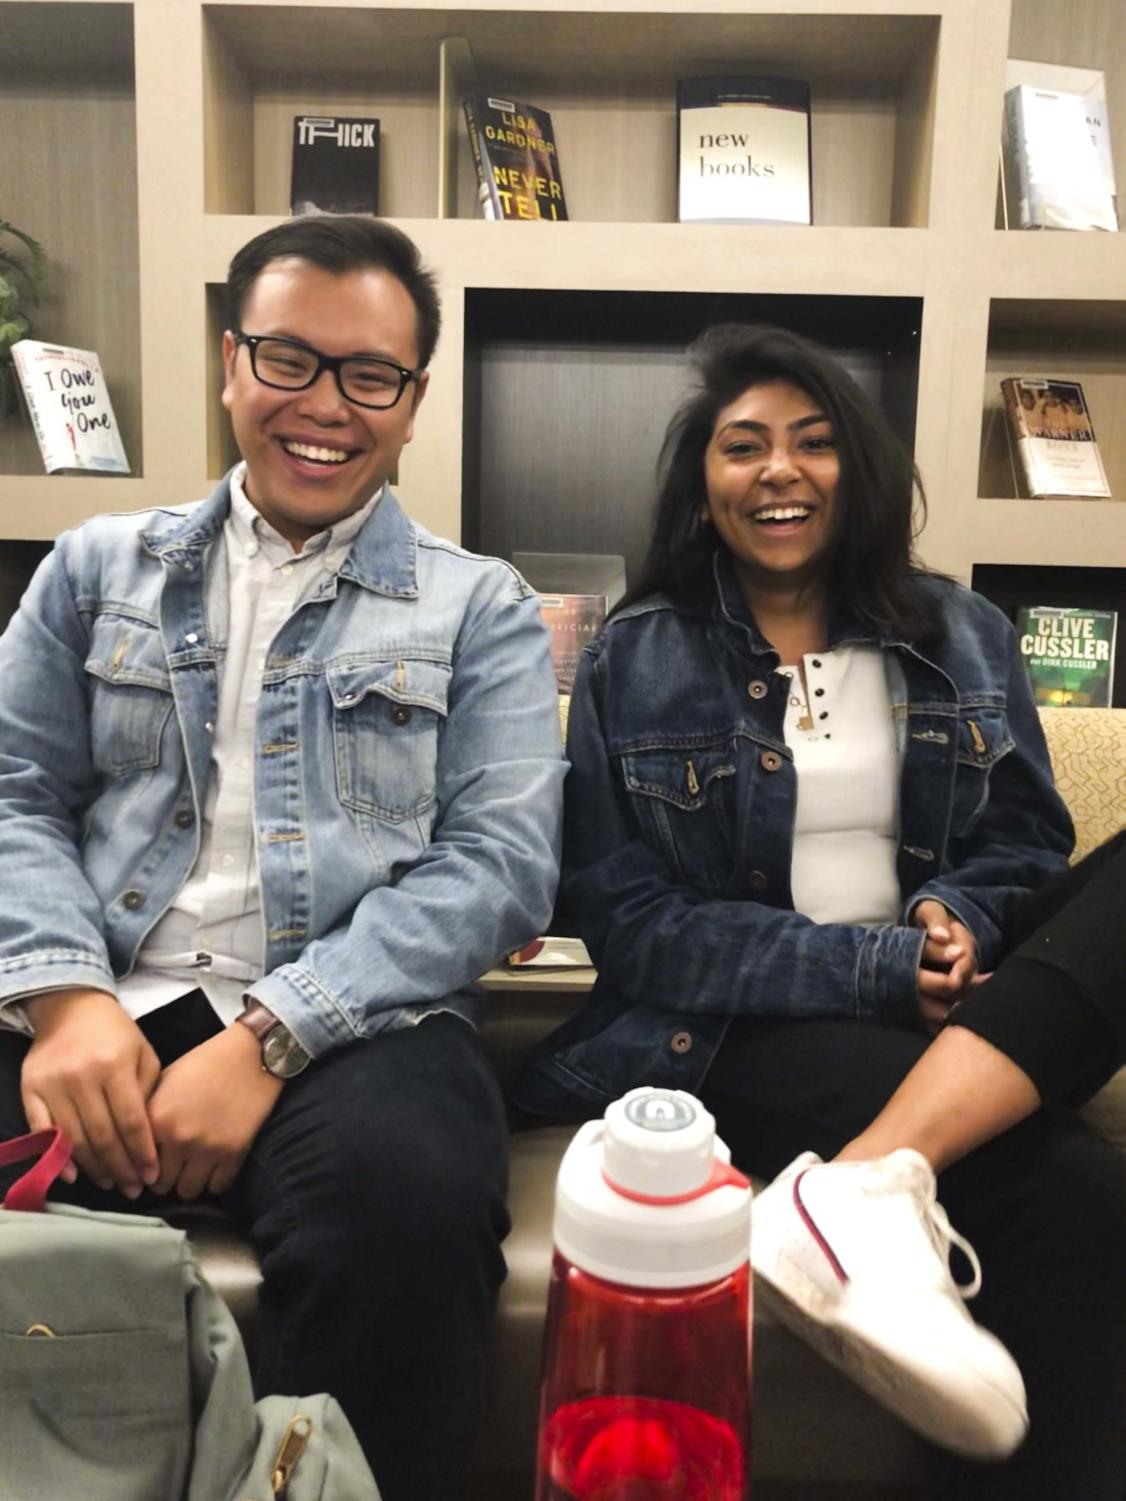 Albert Tanjaya and Sareena Fayaz are both seniors and the new co-presidents of Humans of Pitt, an organization based off of the famous Humans of New York photoblog.